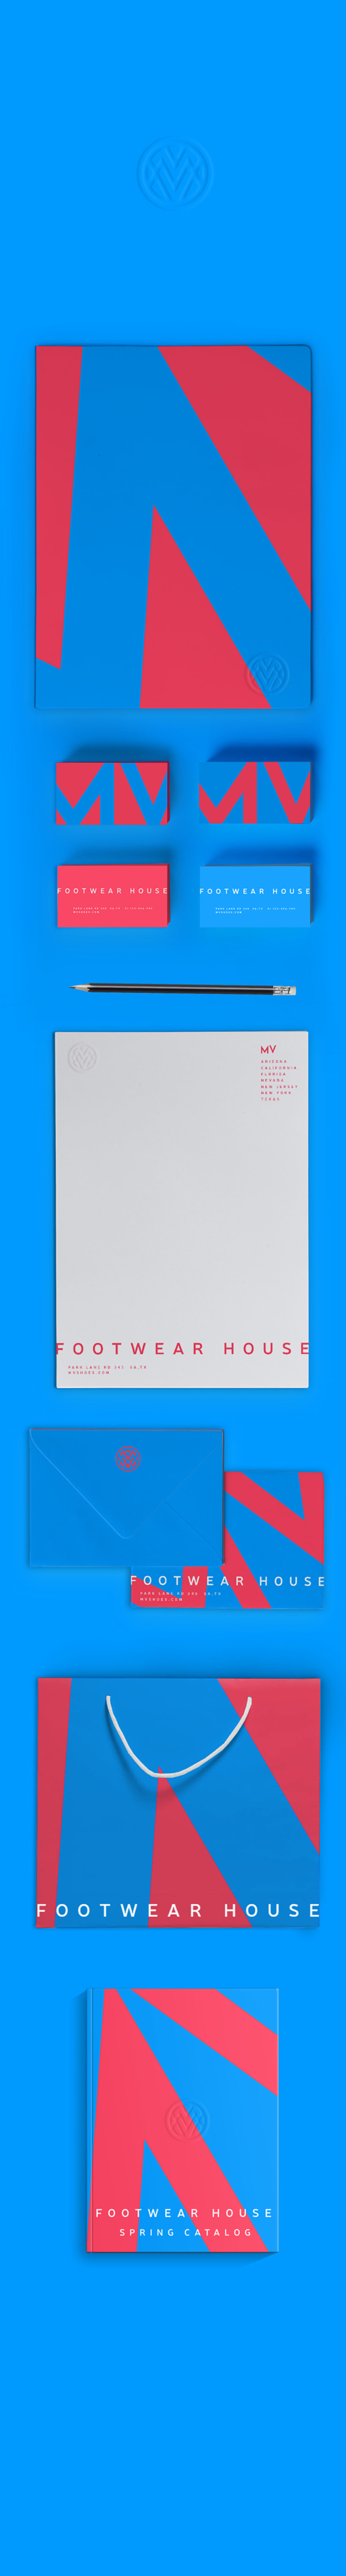 MV Footwarehouse 0